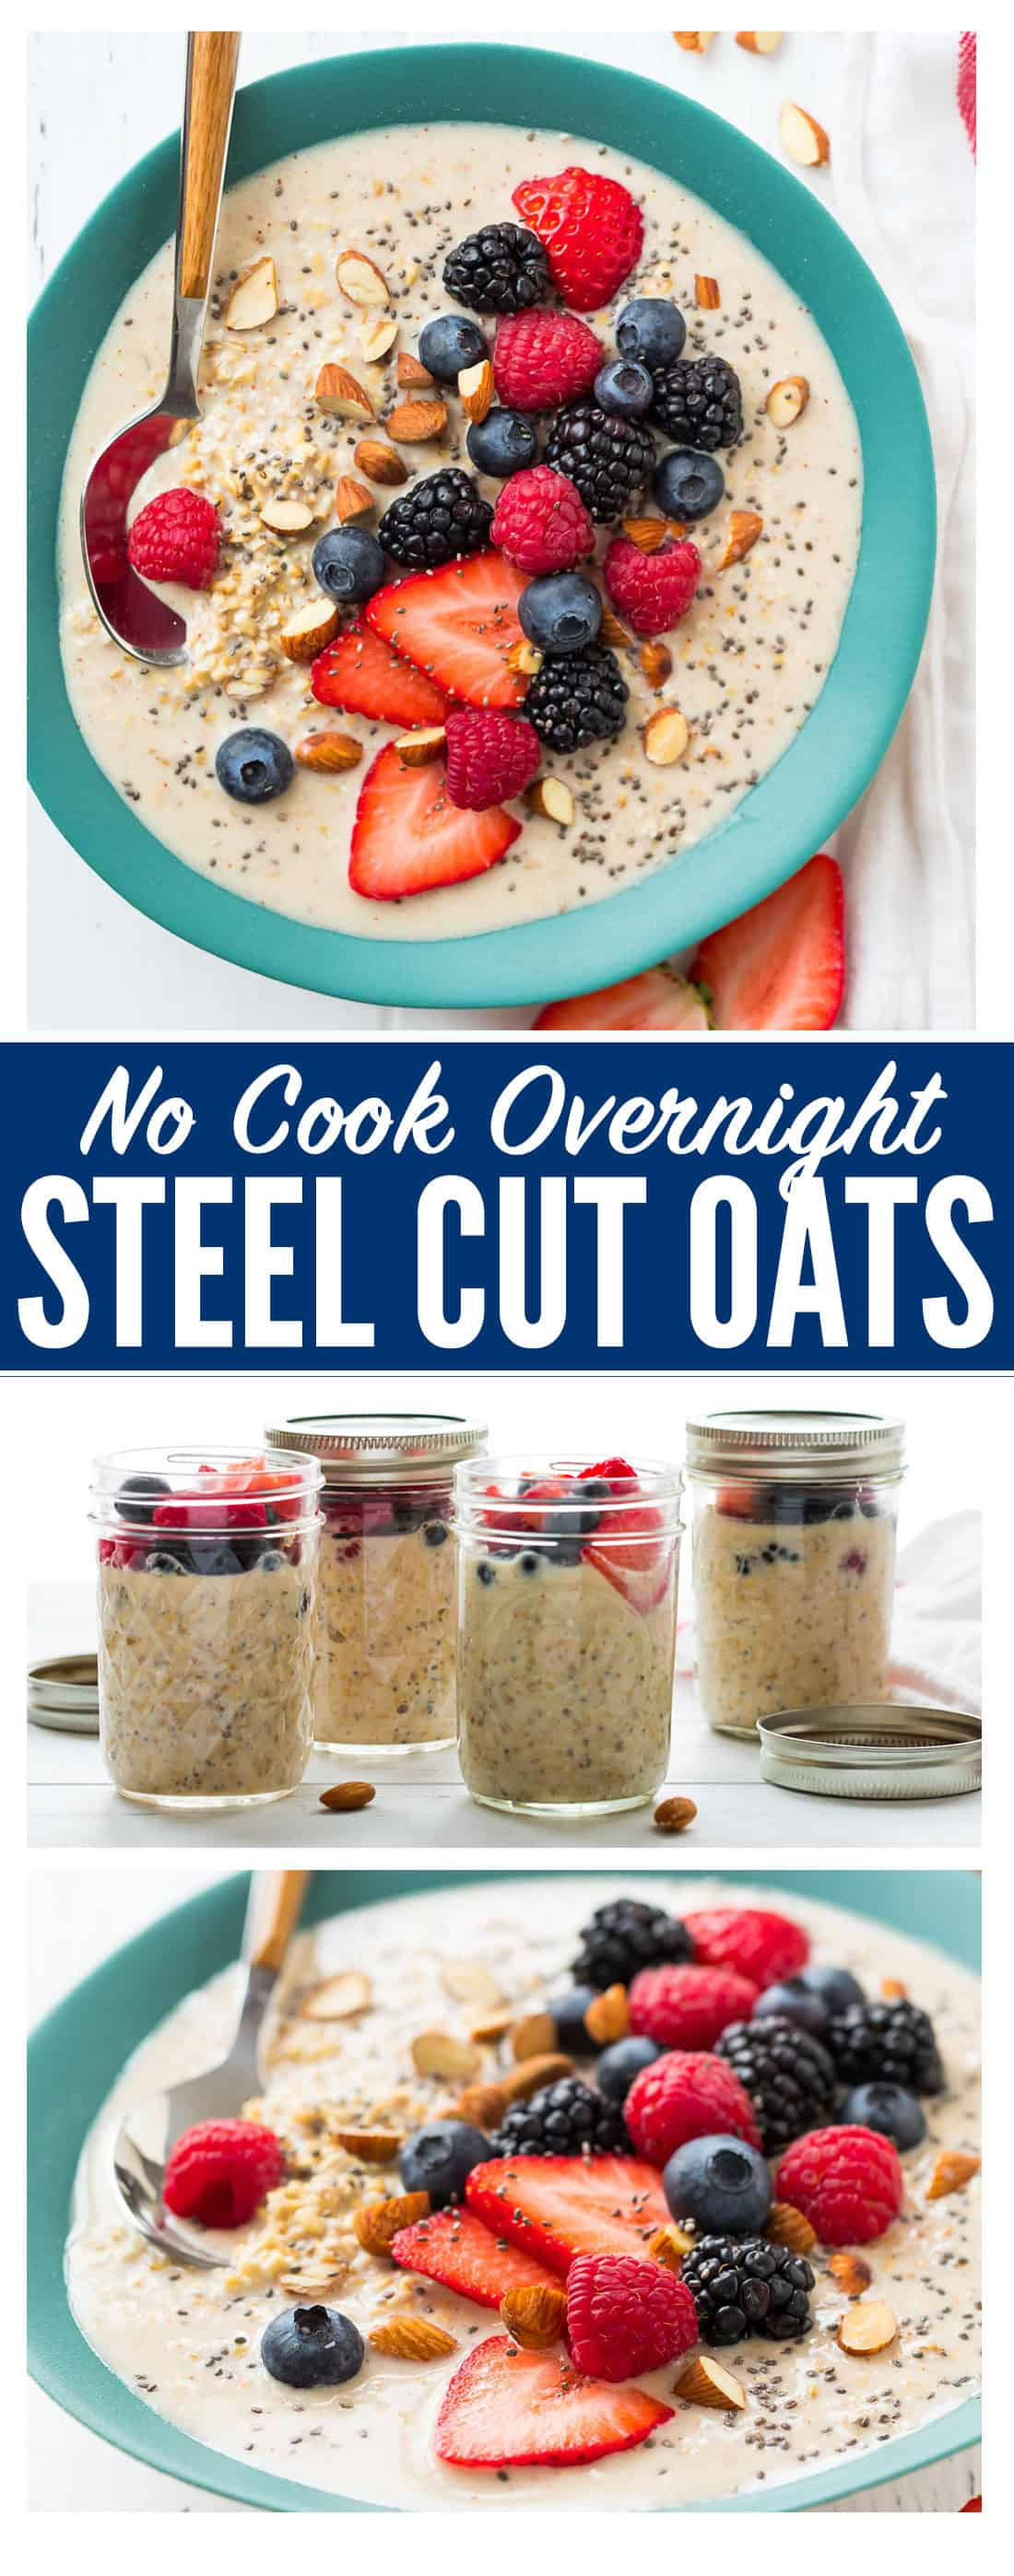 Meal Prep Overnight Steel Cut Oats. An easy, healthy no cook breakfast! Made with almond milk, peanut butter, and any other mix-ins you love, this high protein vegan recipe is endlessly customizable and can last in the refrigerator all week. #nocook #easy